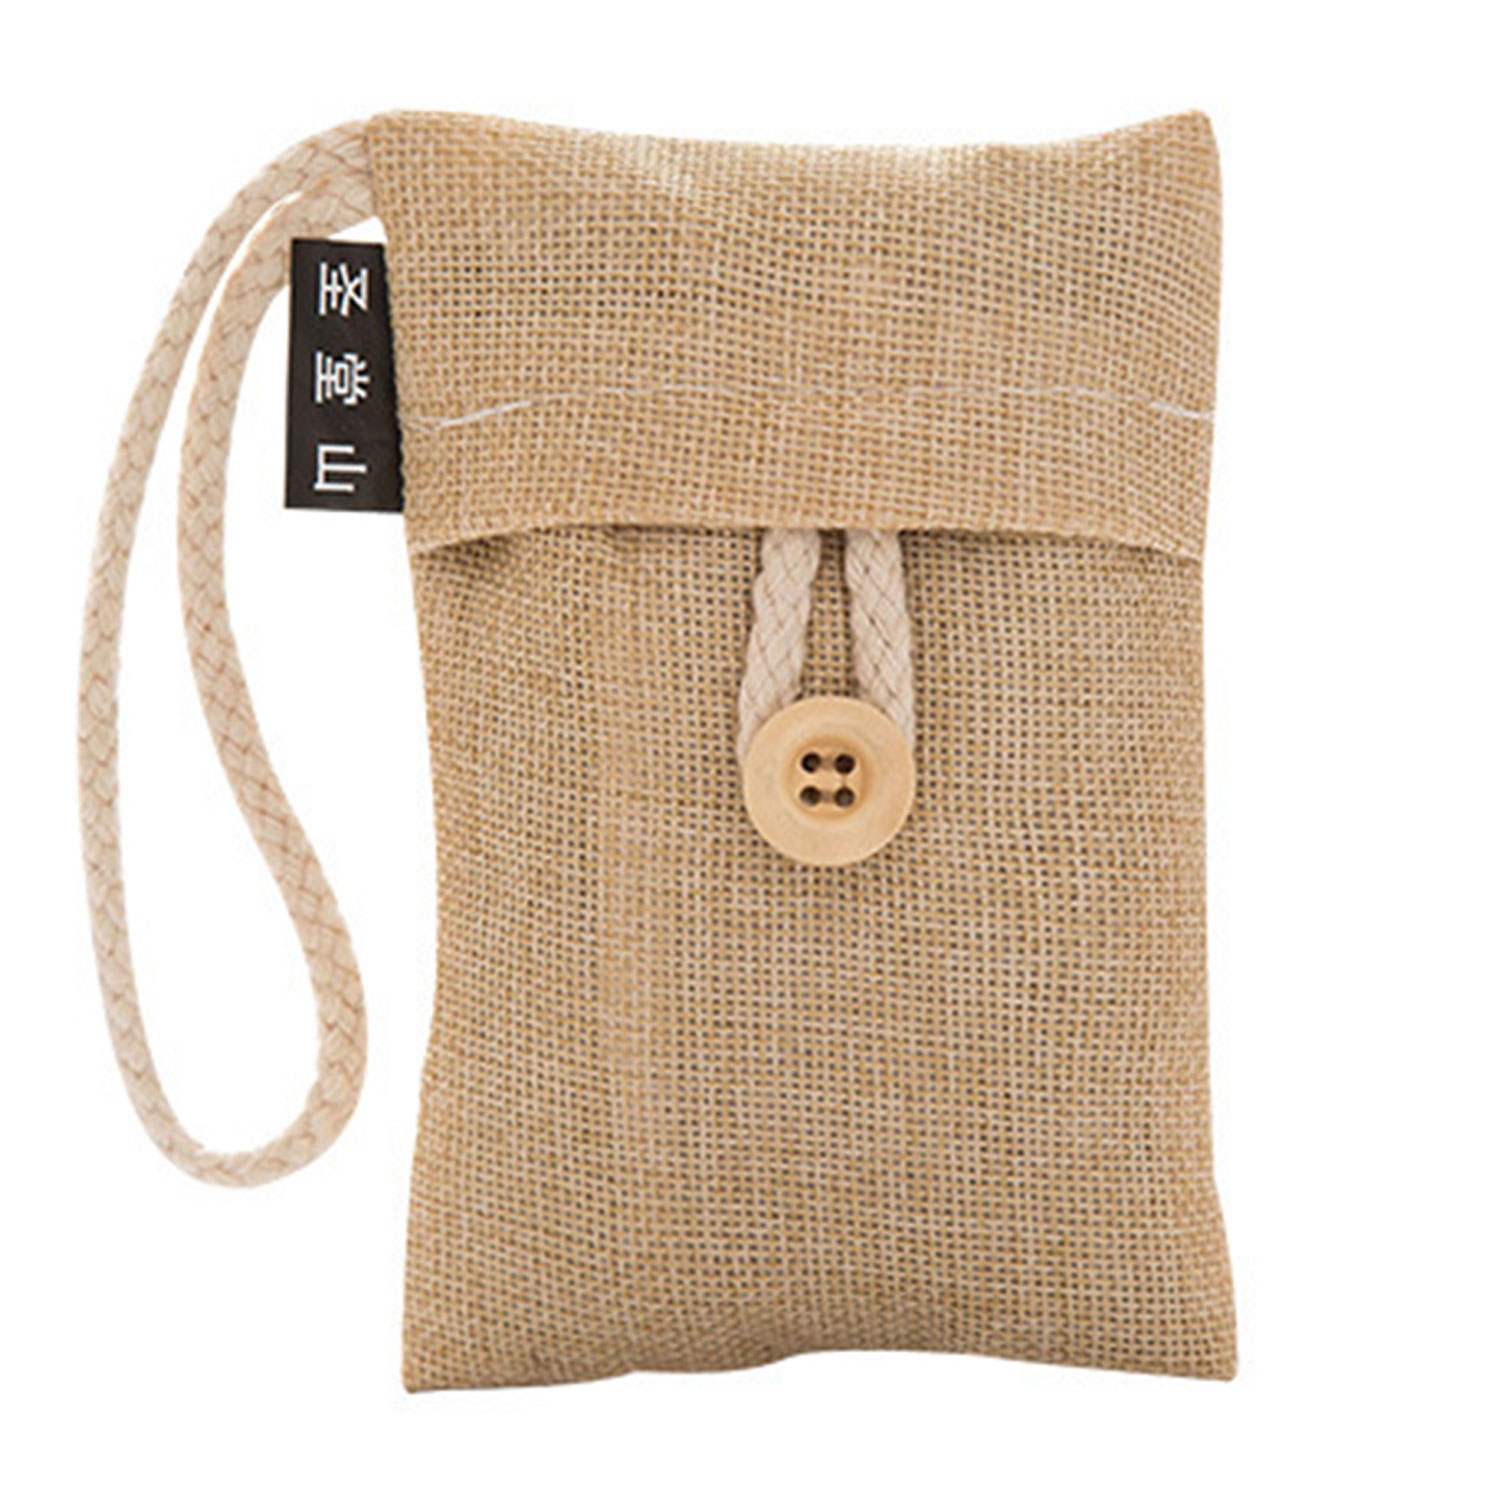 bamboo charcoal bag - photo #10